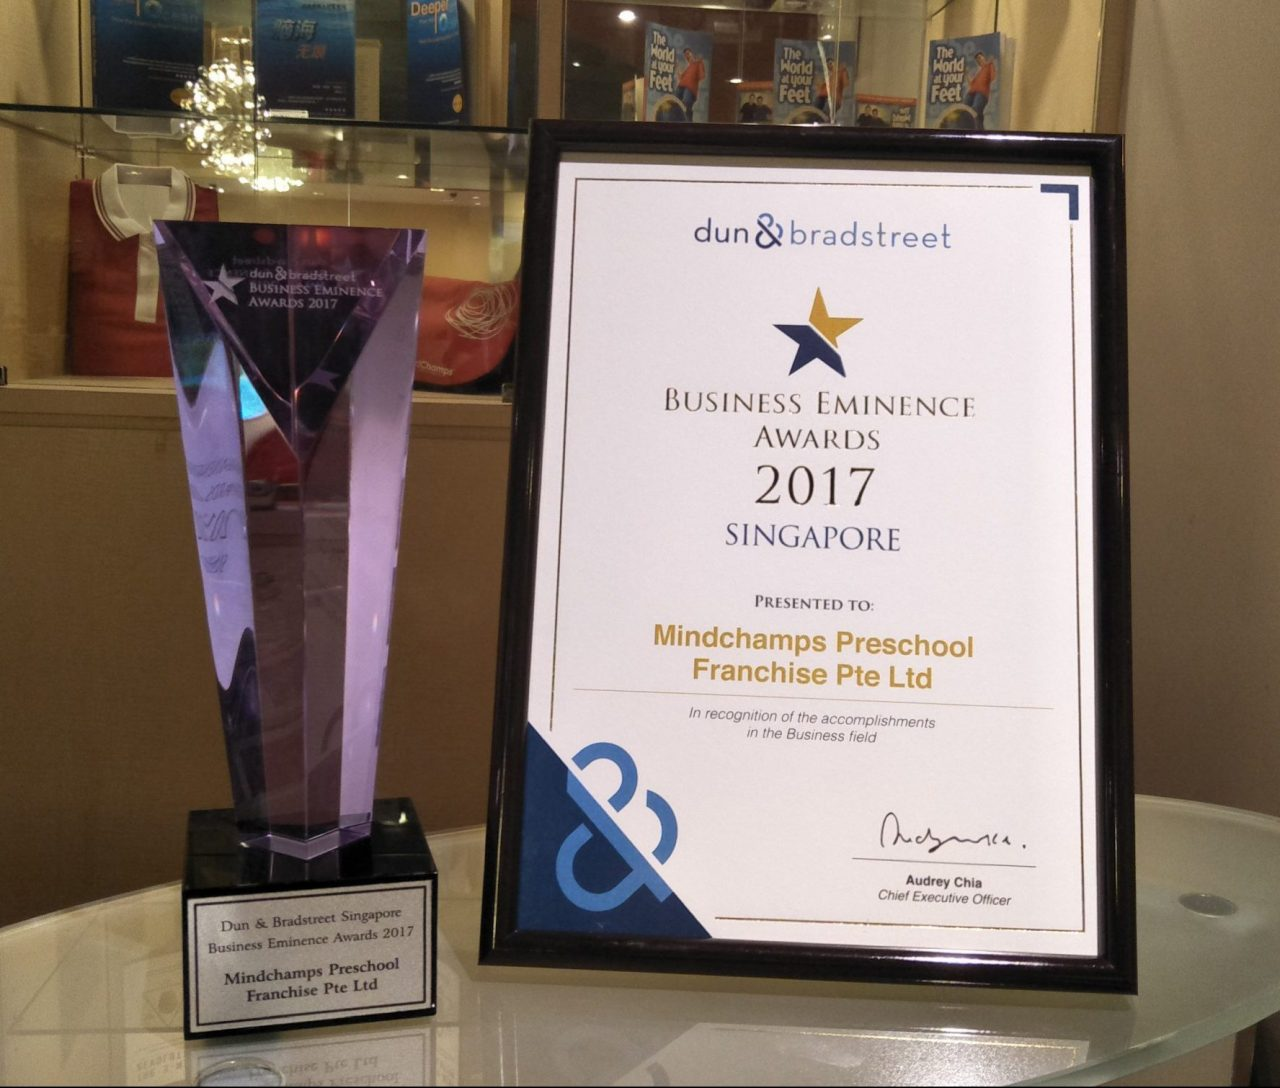 https://s3-ap-southeast-1.amazonaws.com/mindchamps-prod-wp/wp-content/uploads/2017/07/16142154/Business-Eminence-Awards-e1500281177576-1280x1088.jpg